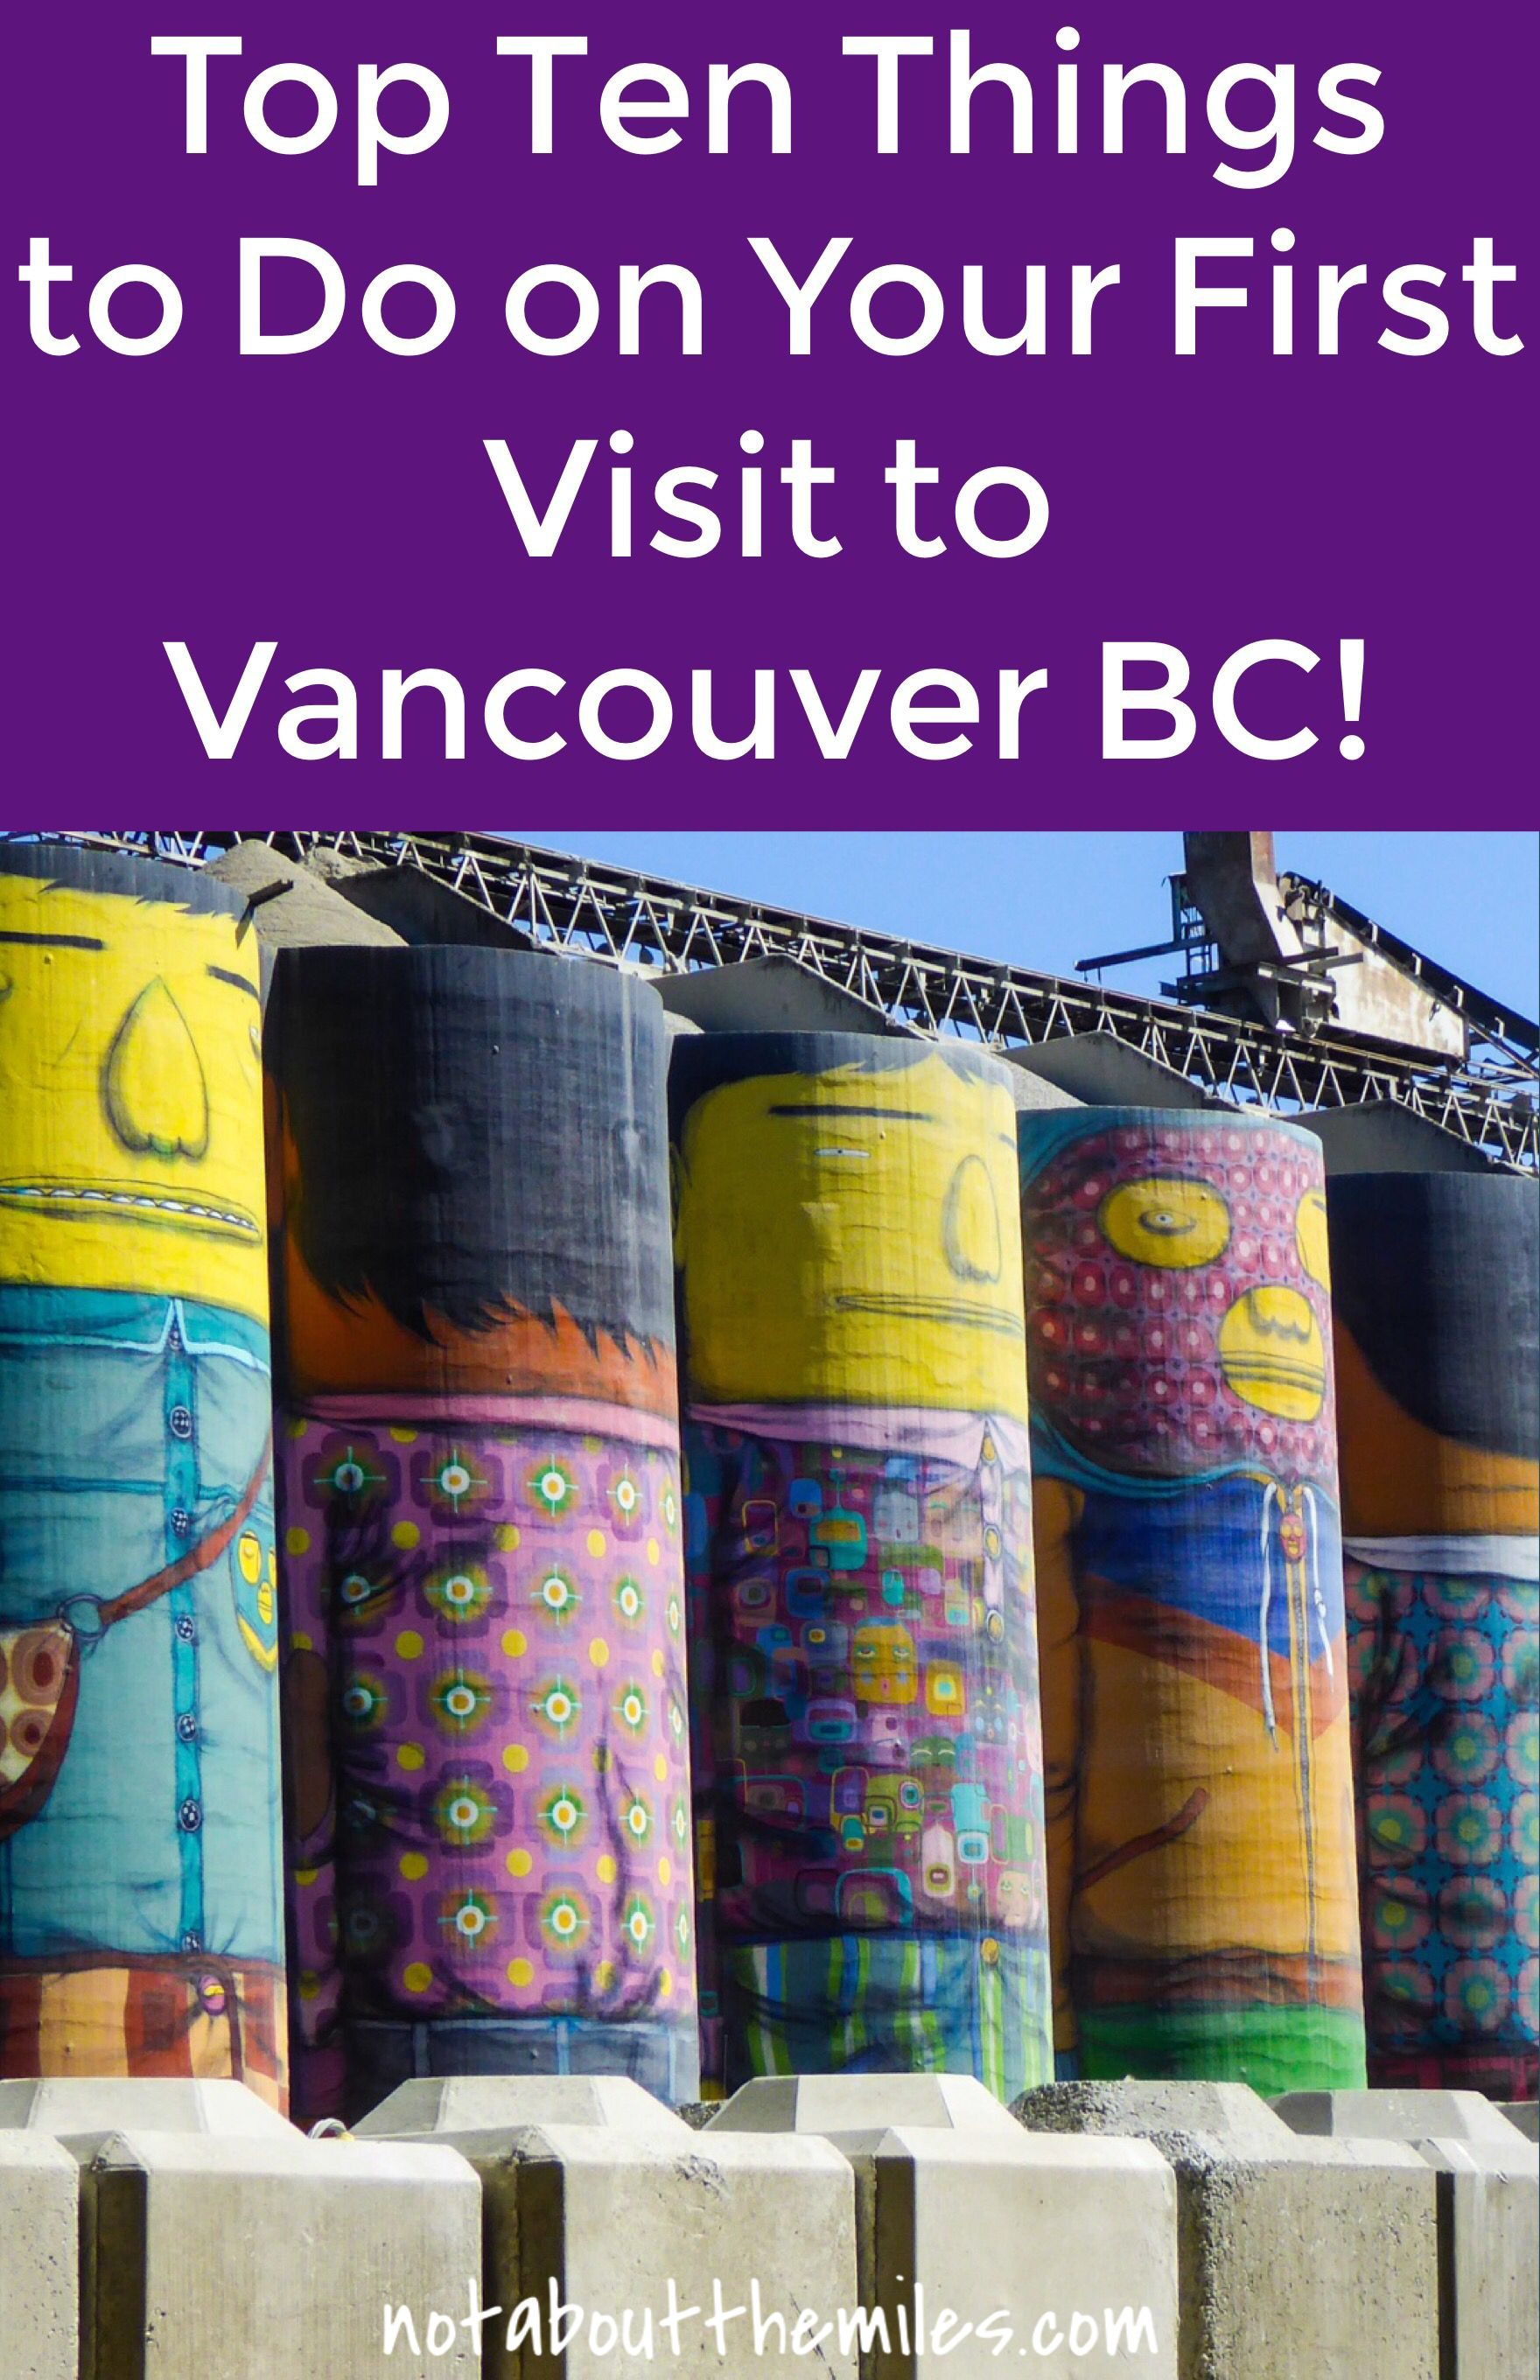 Vancouver BC is an awesome city break destination. Read my post to discover the top ten things to do on your first visit to Vancouver BC! From exploring Stanley Park to noshing on great eats at Granville Island, there's lots to do here! #vancouverbc #visitvancouver #canadatravel #stanleypark #canadaplace #seawall #granvilleisland #streetart #photography